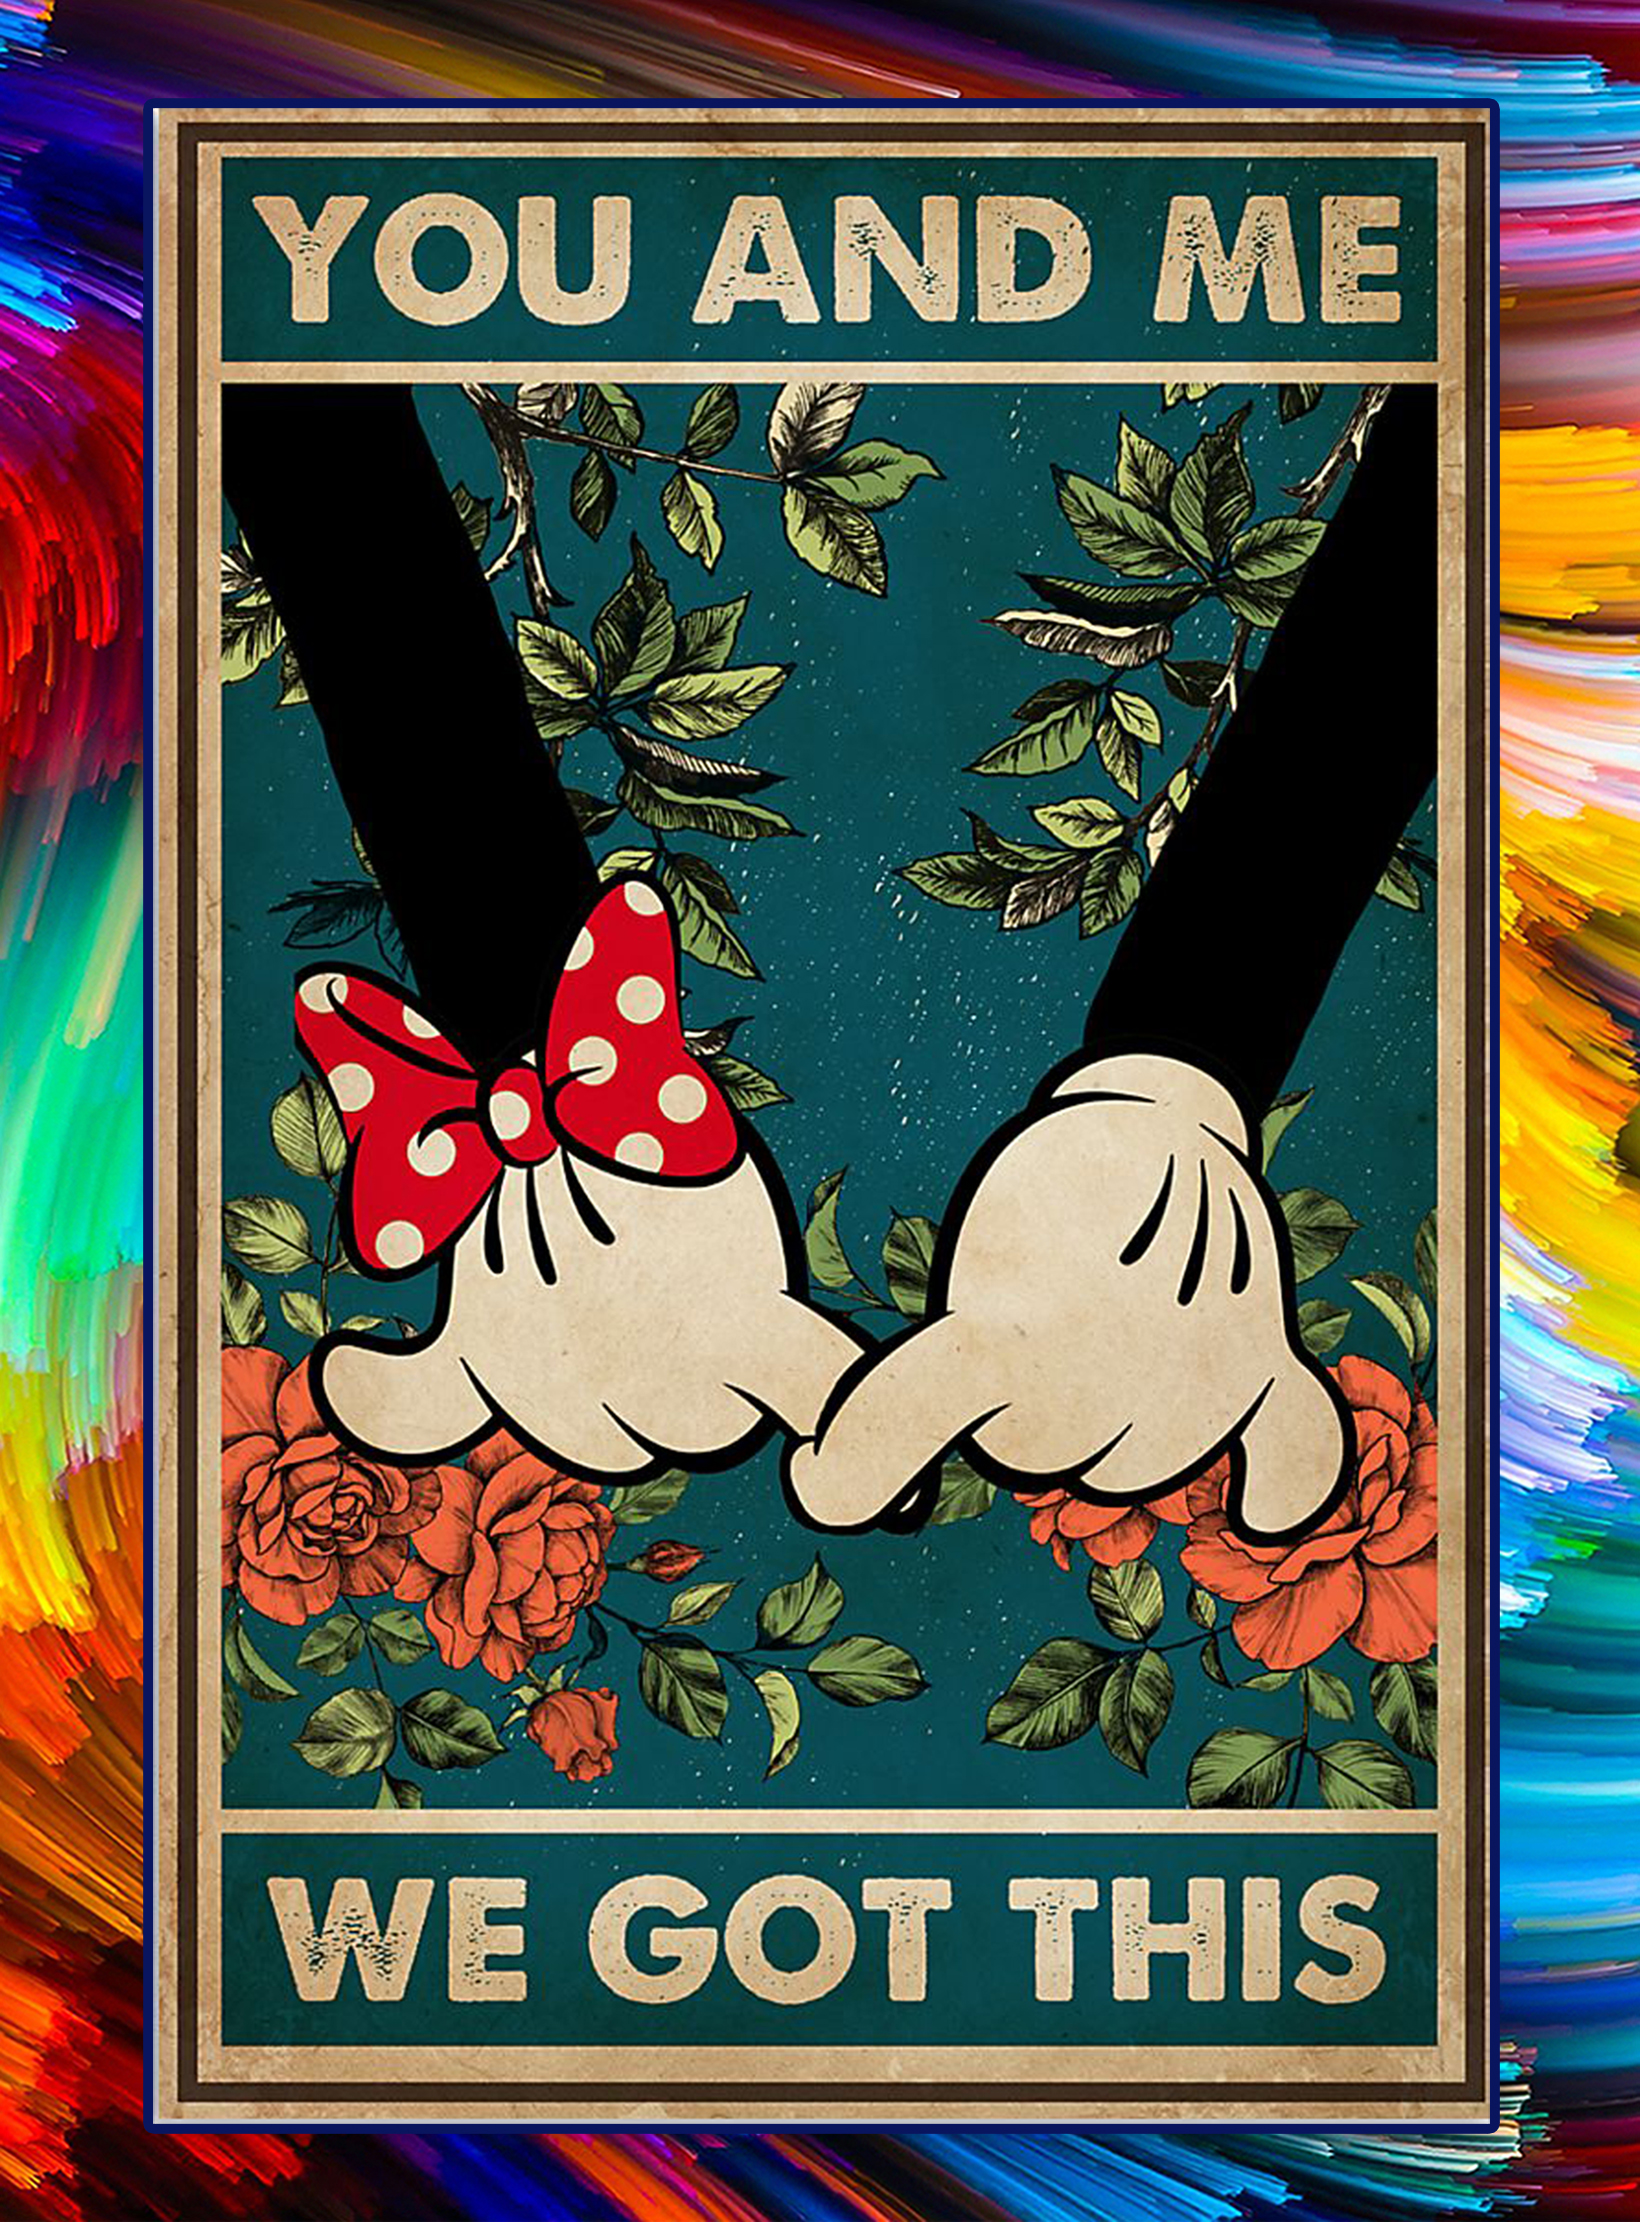 You and me we got this mickey poster - A2